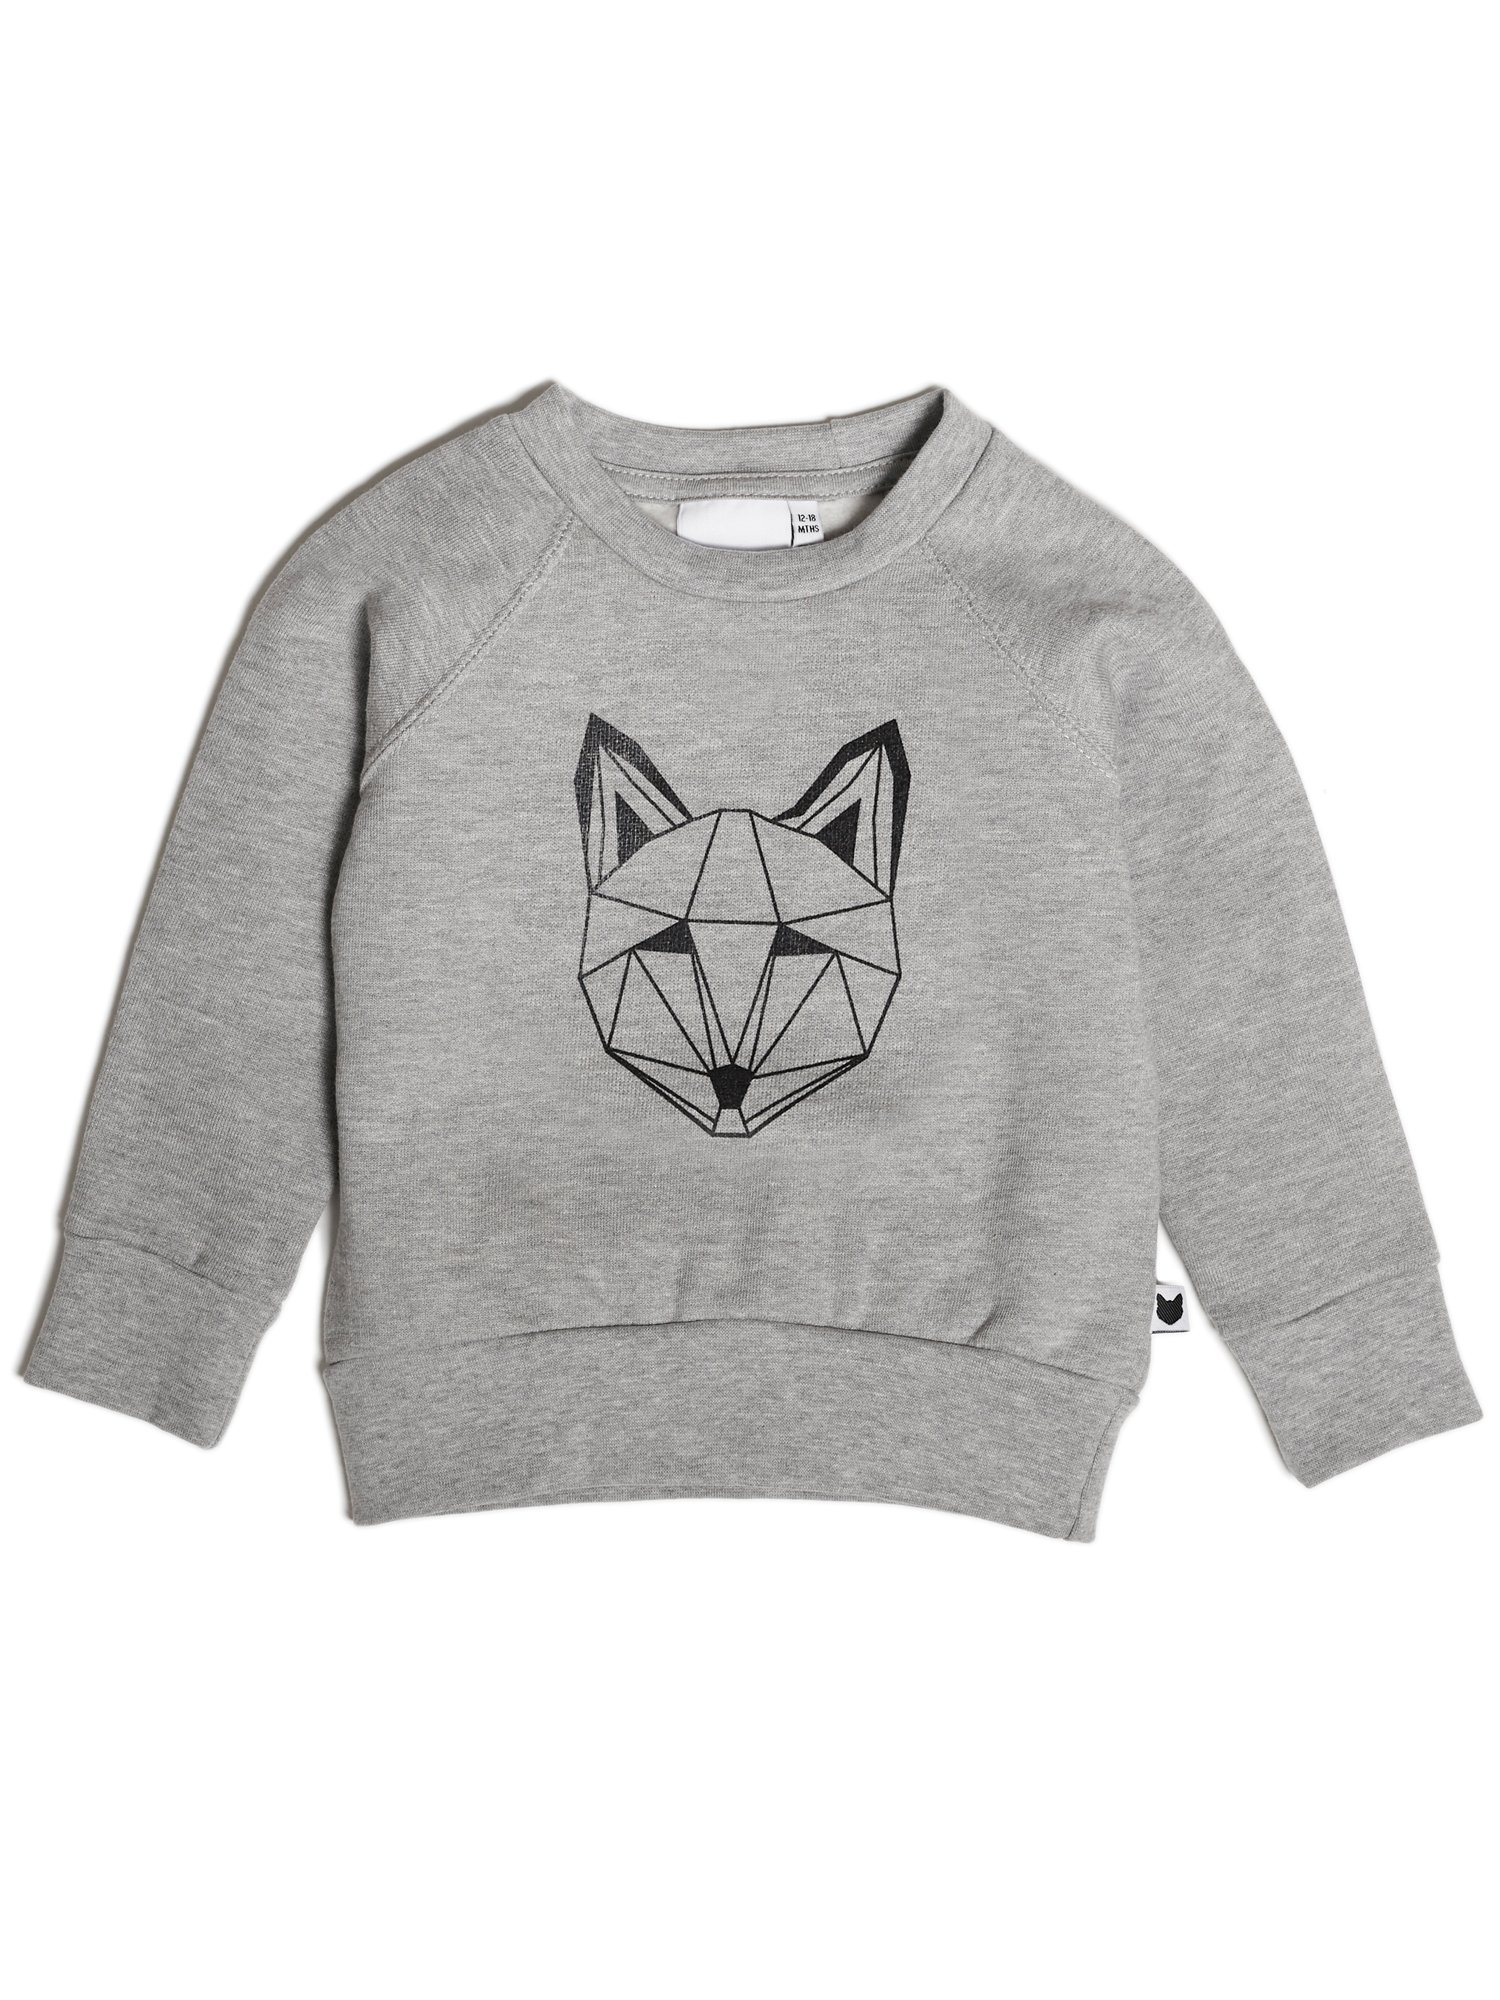 Baby fox sweatshirt